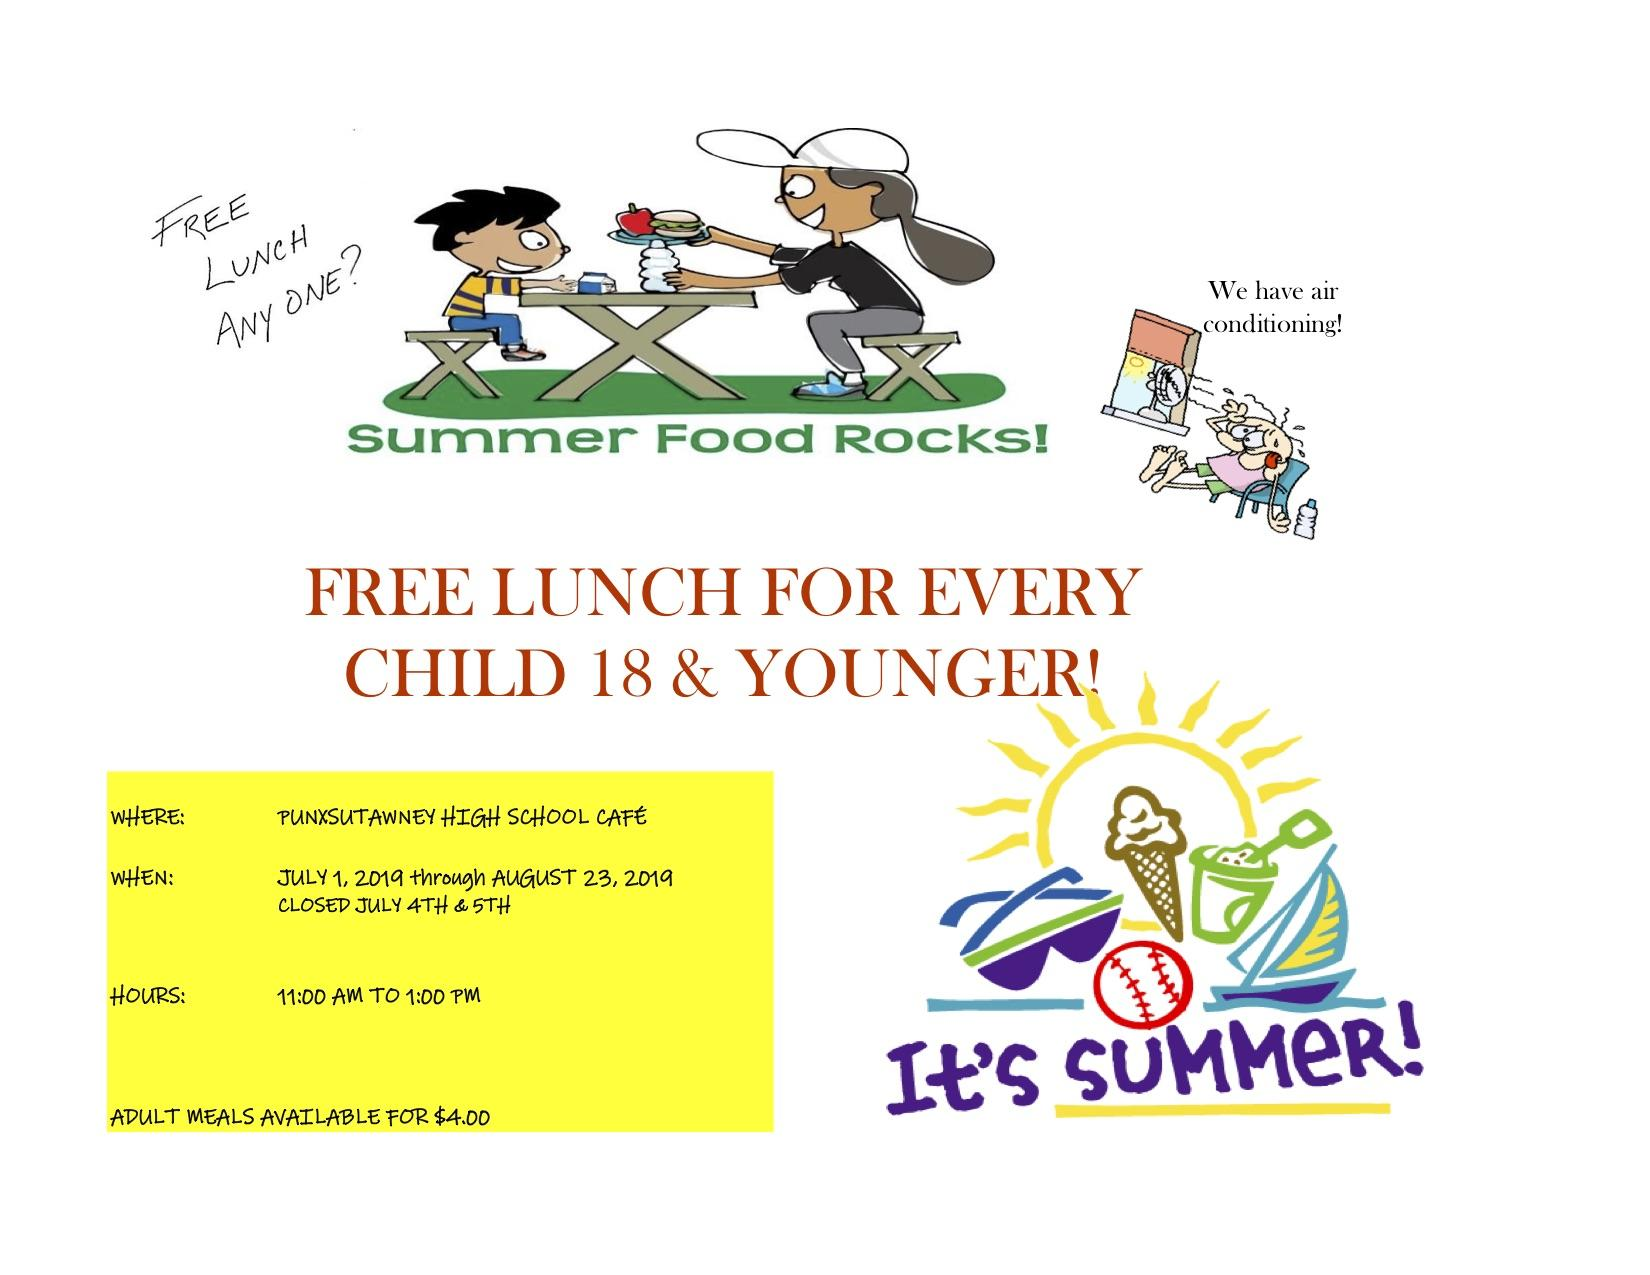 Summer Food Service Poster